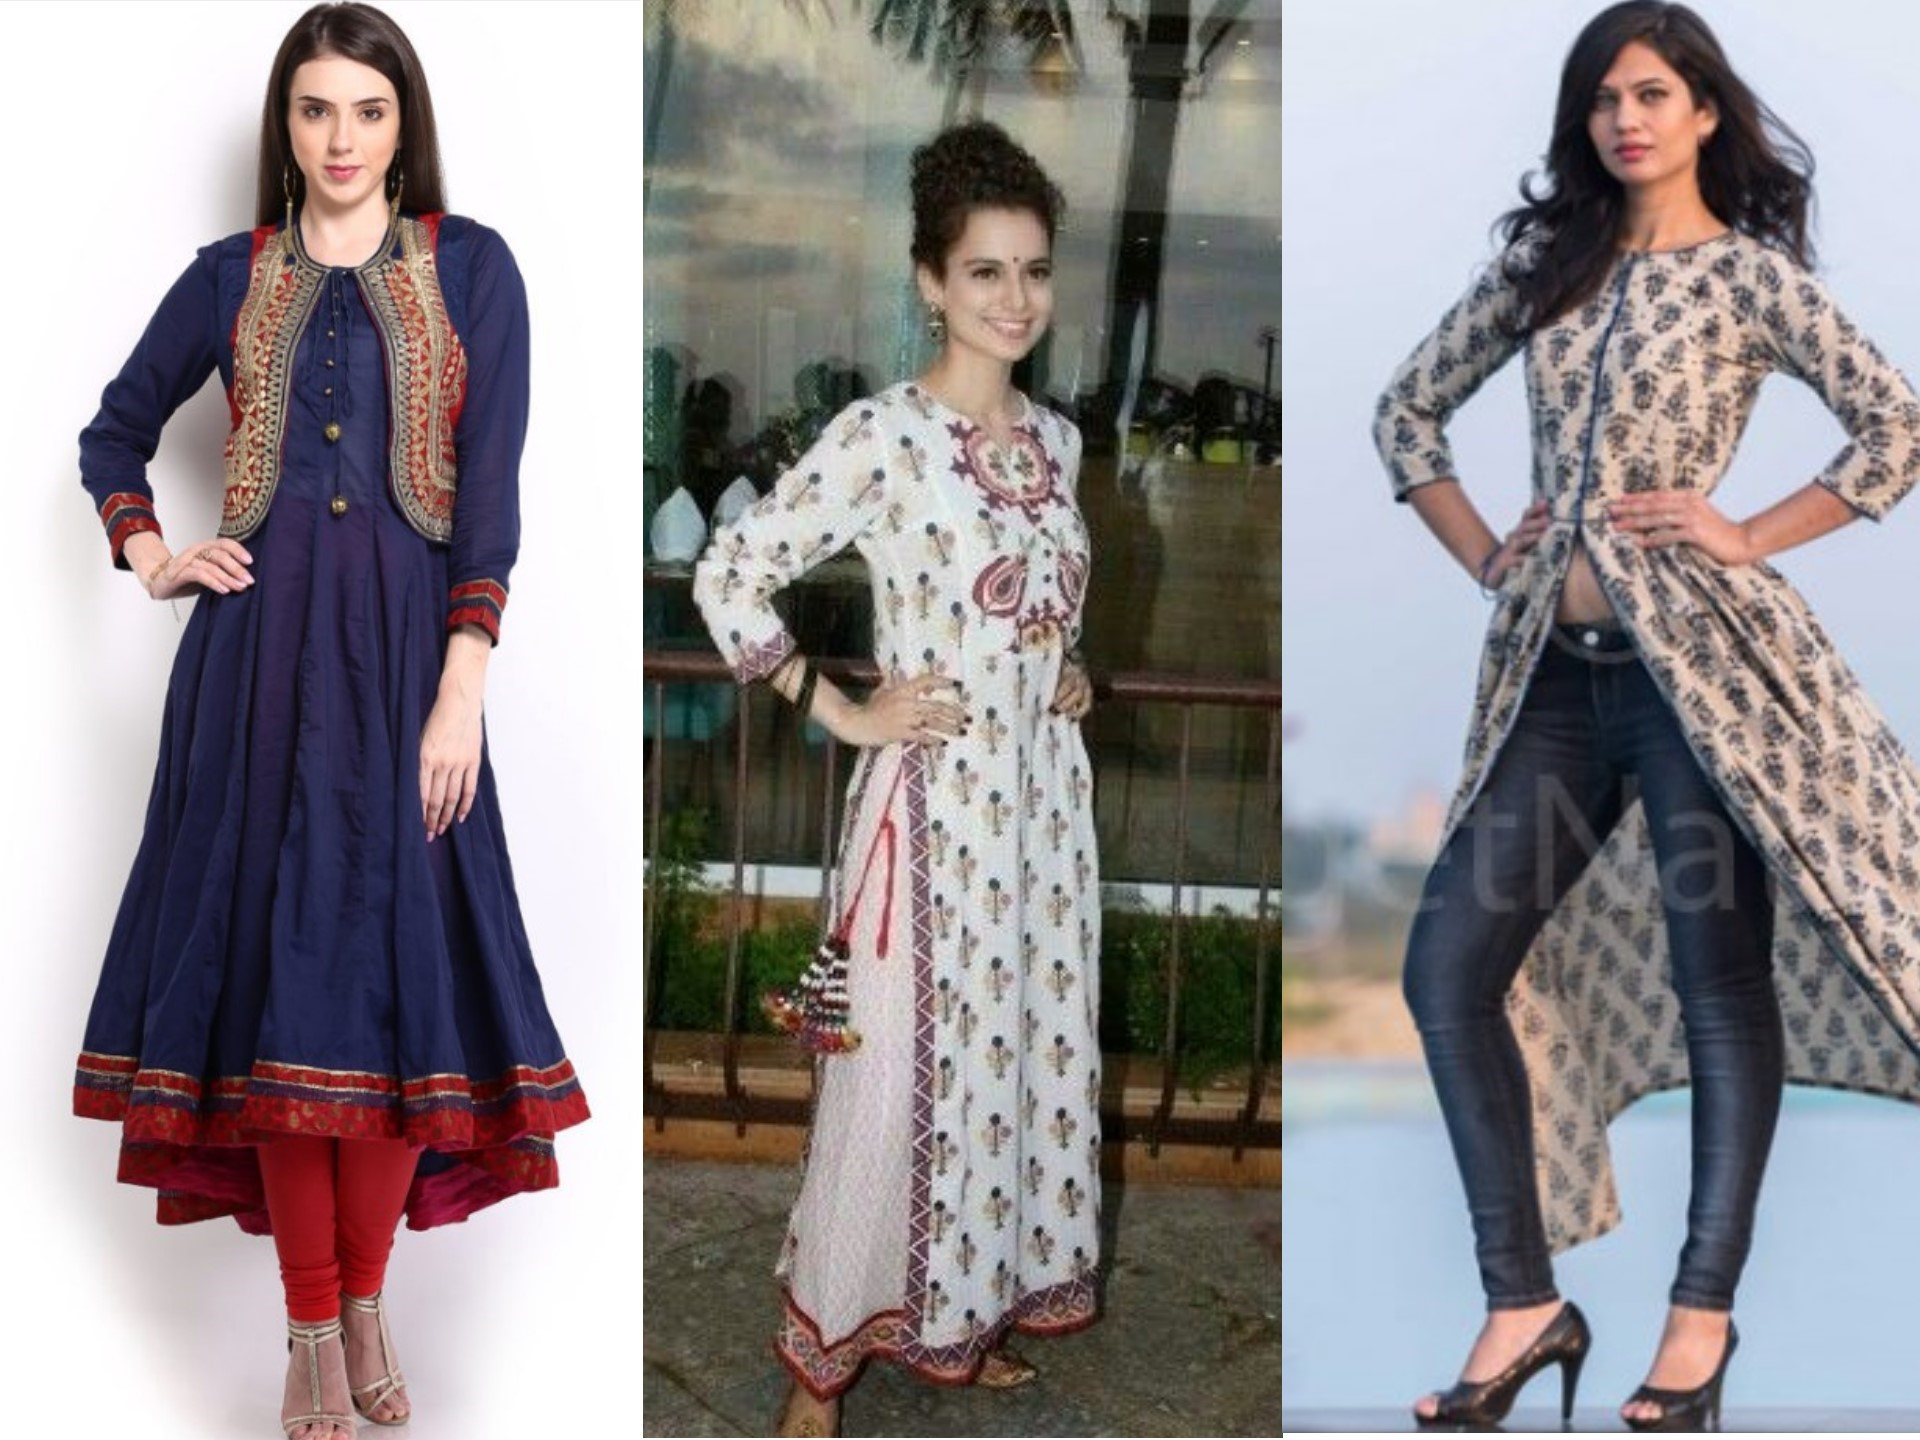 8 Fashionable Kurtis That Every College Girl Should Own